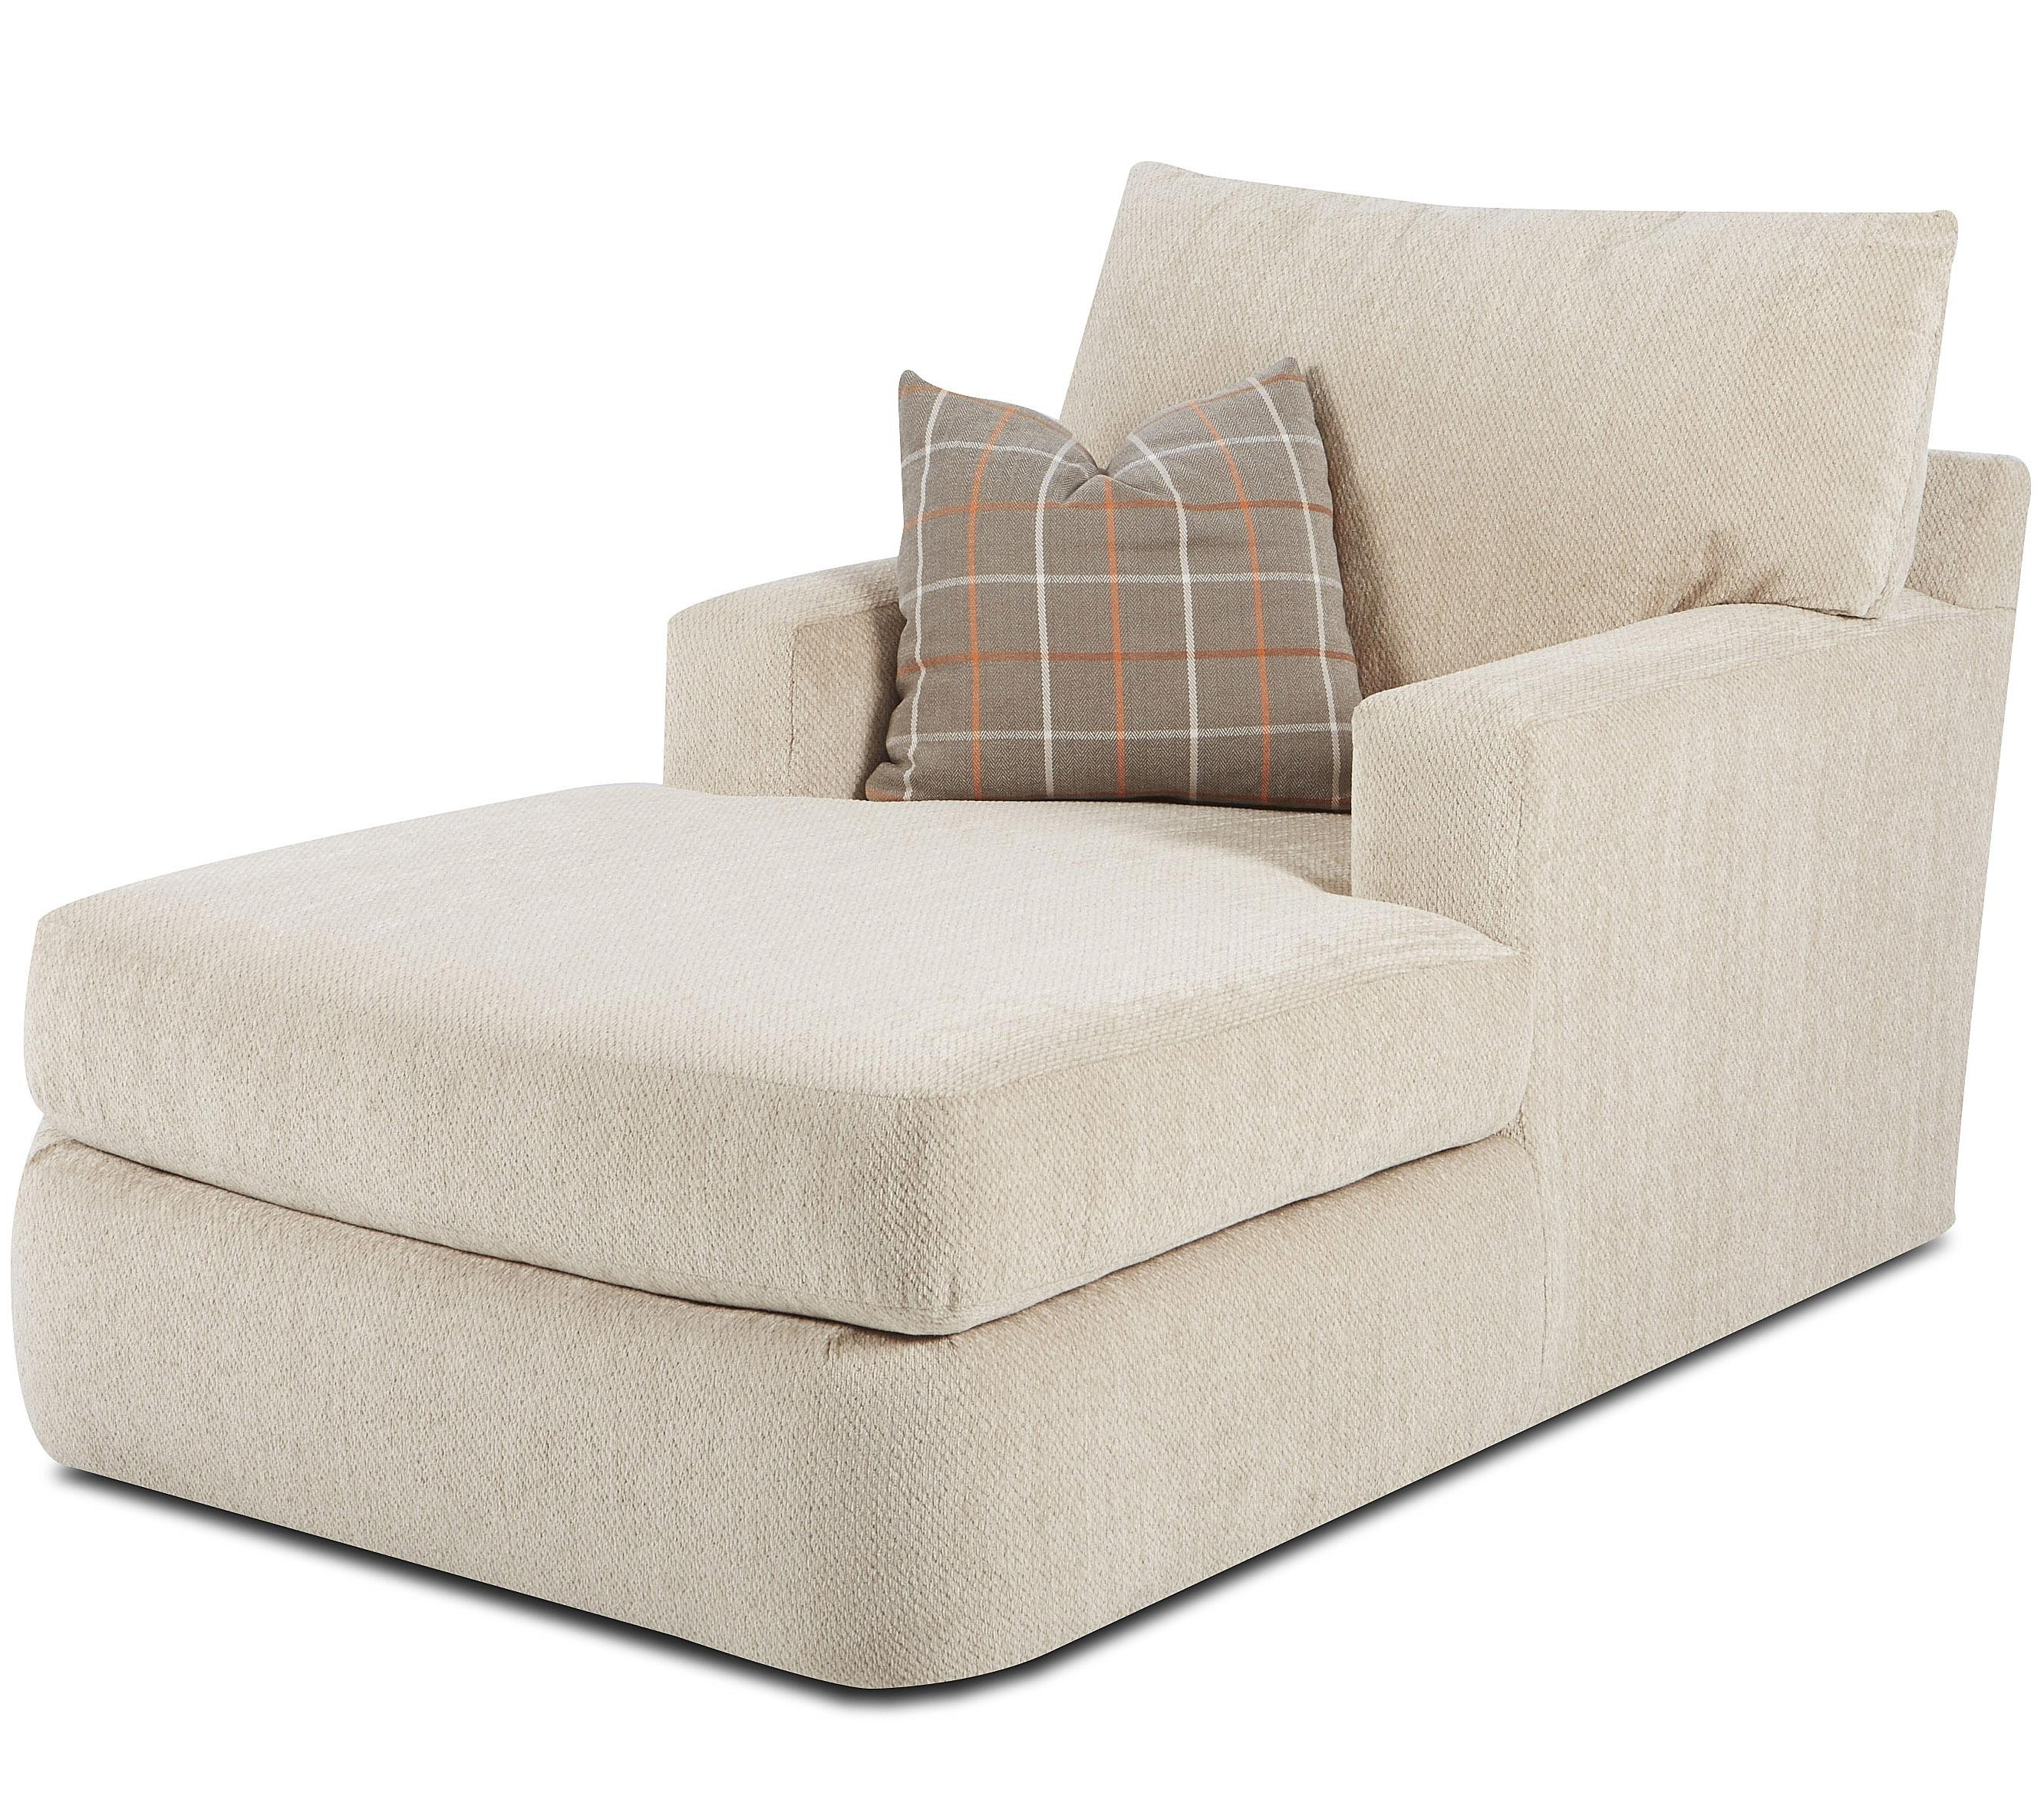 Fashionable Chaise Lounges With Arms In Klaussner Oliver Contemporary Track Arm Chaise (View 11 of 15)